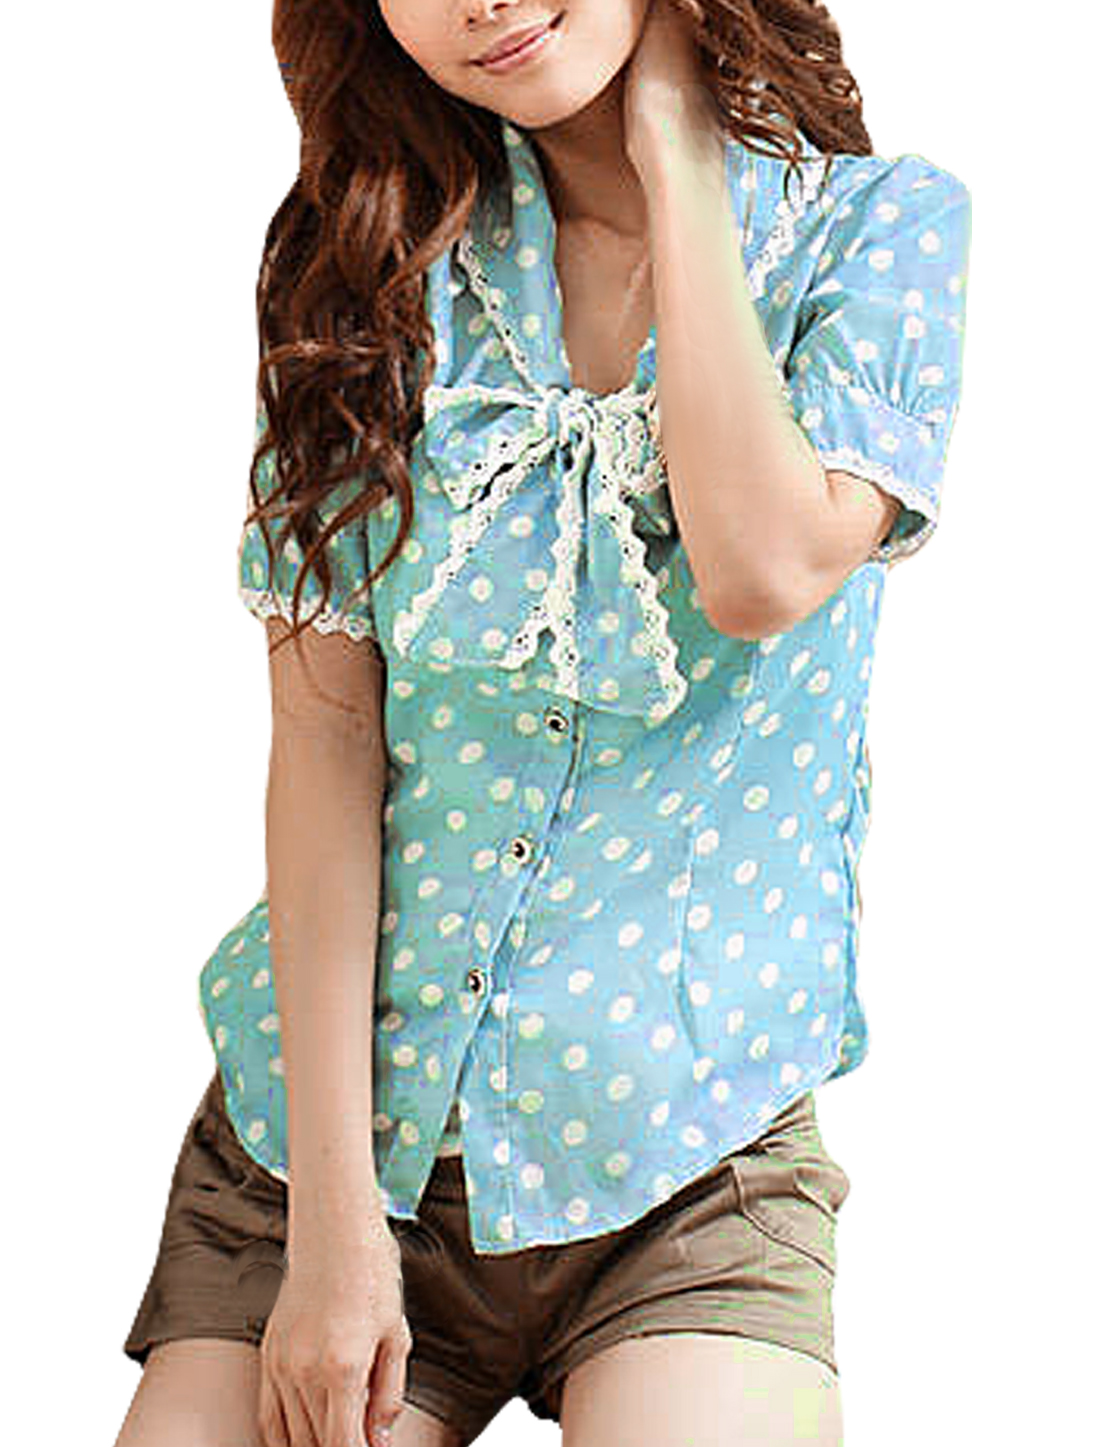 Self Tie Knot Accent Collar Dots Print Baby Blue Blouse XS for Women